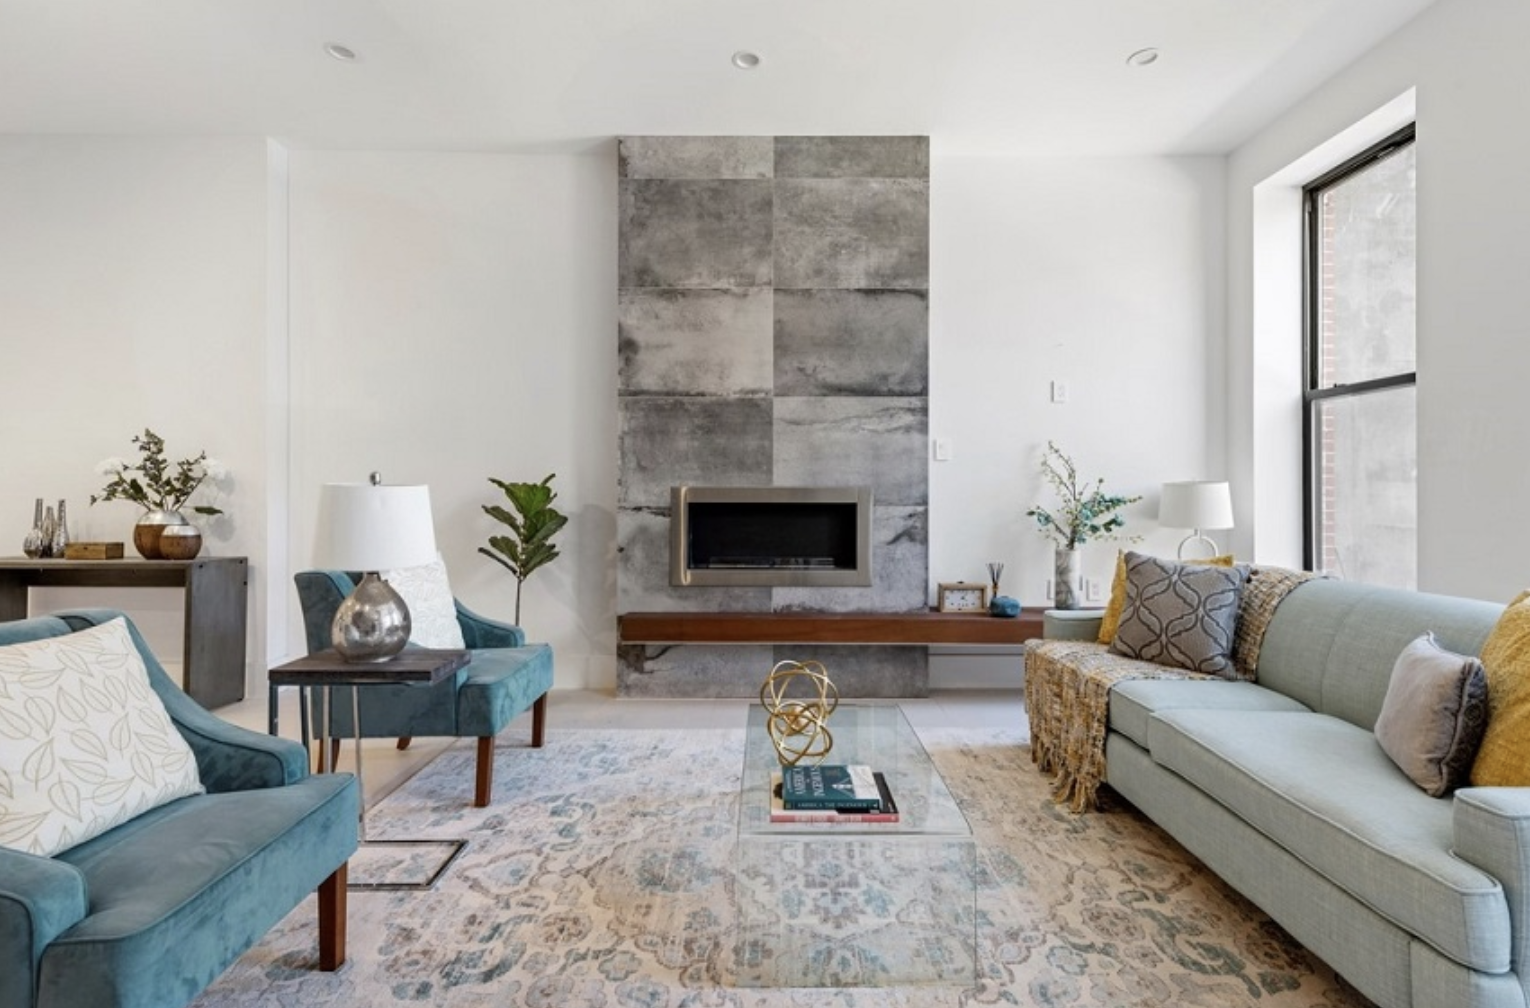 1322 BERGEN STREET - $1,750,000 // 5 Beds // 3.5 Baths // 3,200 SQFTA gut-renovated 2-family townhouse overlooking Revere Place, with a gorgeous owner's duplex and a pristine rental unit, it is both an ideal Crown Heights home and a prime investment opportunity. Features of this 3,200 sq. ft. house include a charming redbrick façade, a deep front yard, sash windows with northern and southern exposure, multi-zone heating and cooling, and a spacious backyard with new fencing.